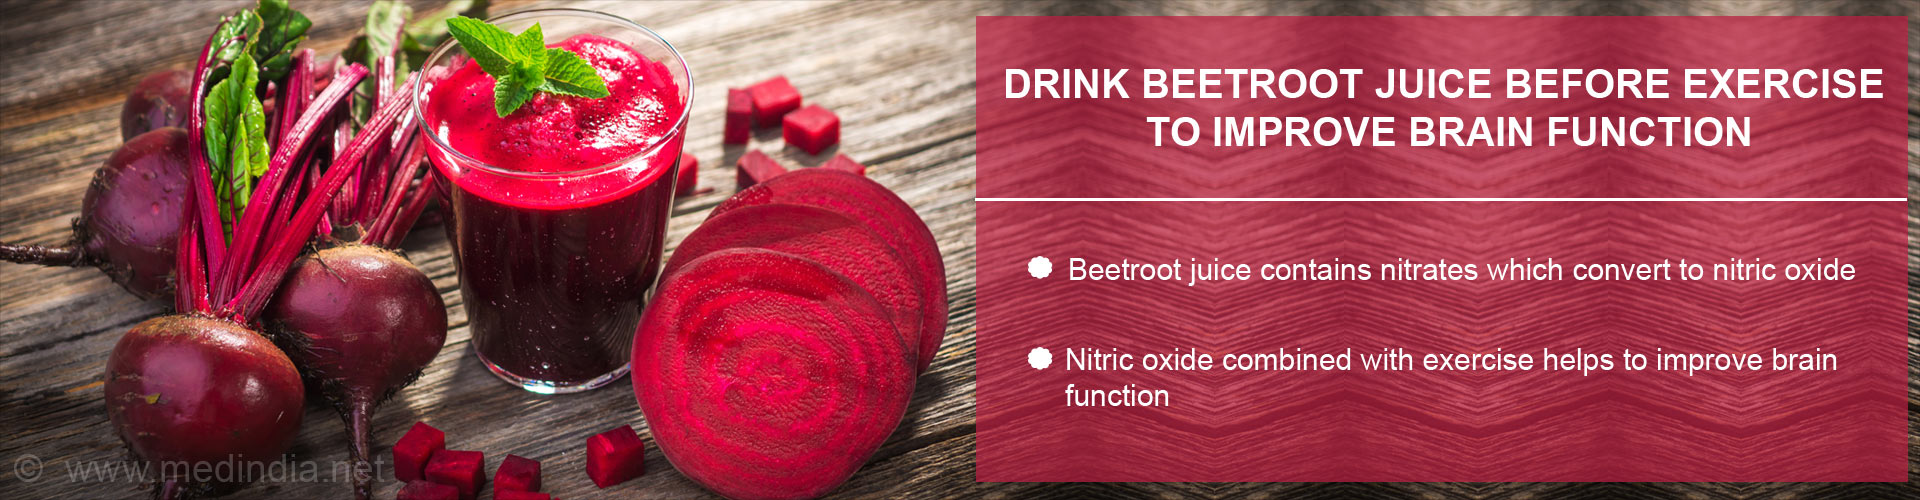 Drink beetroot juice before exercise to improve brain function